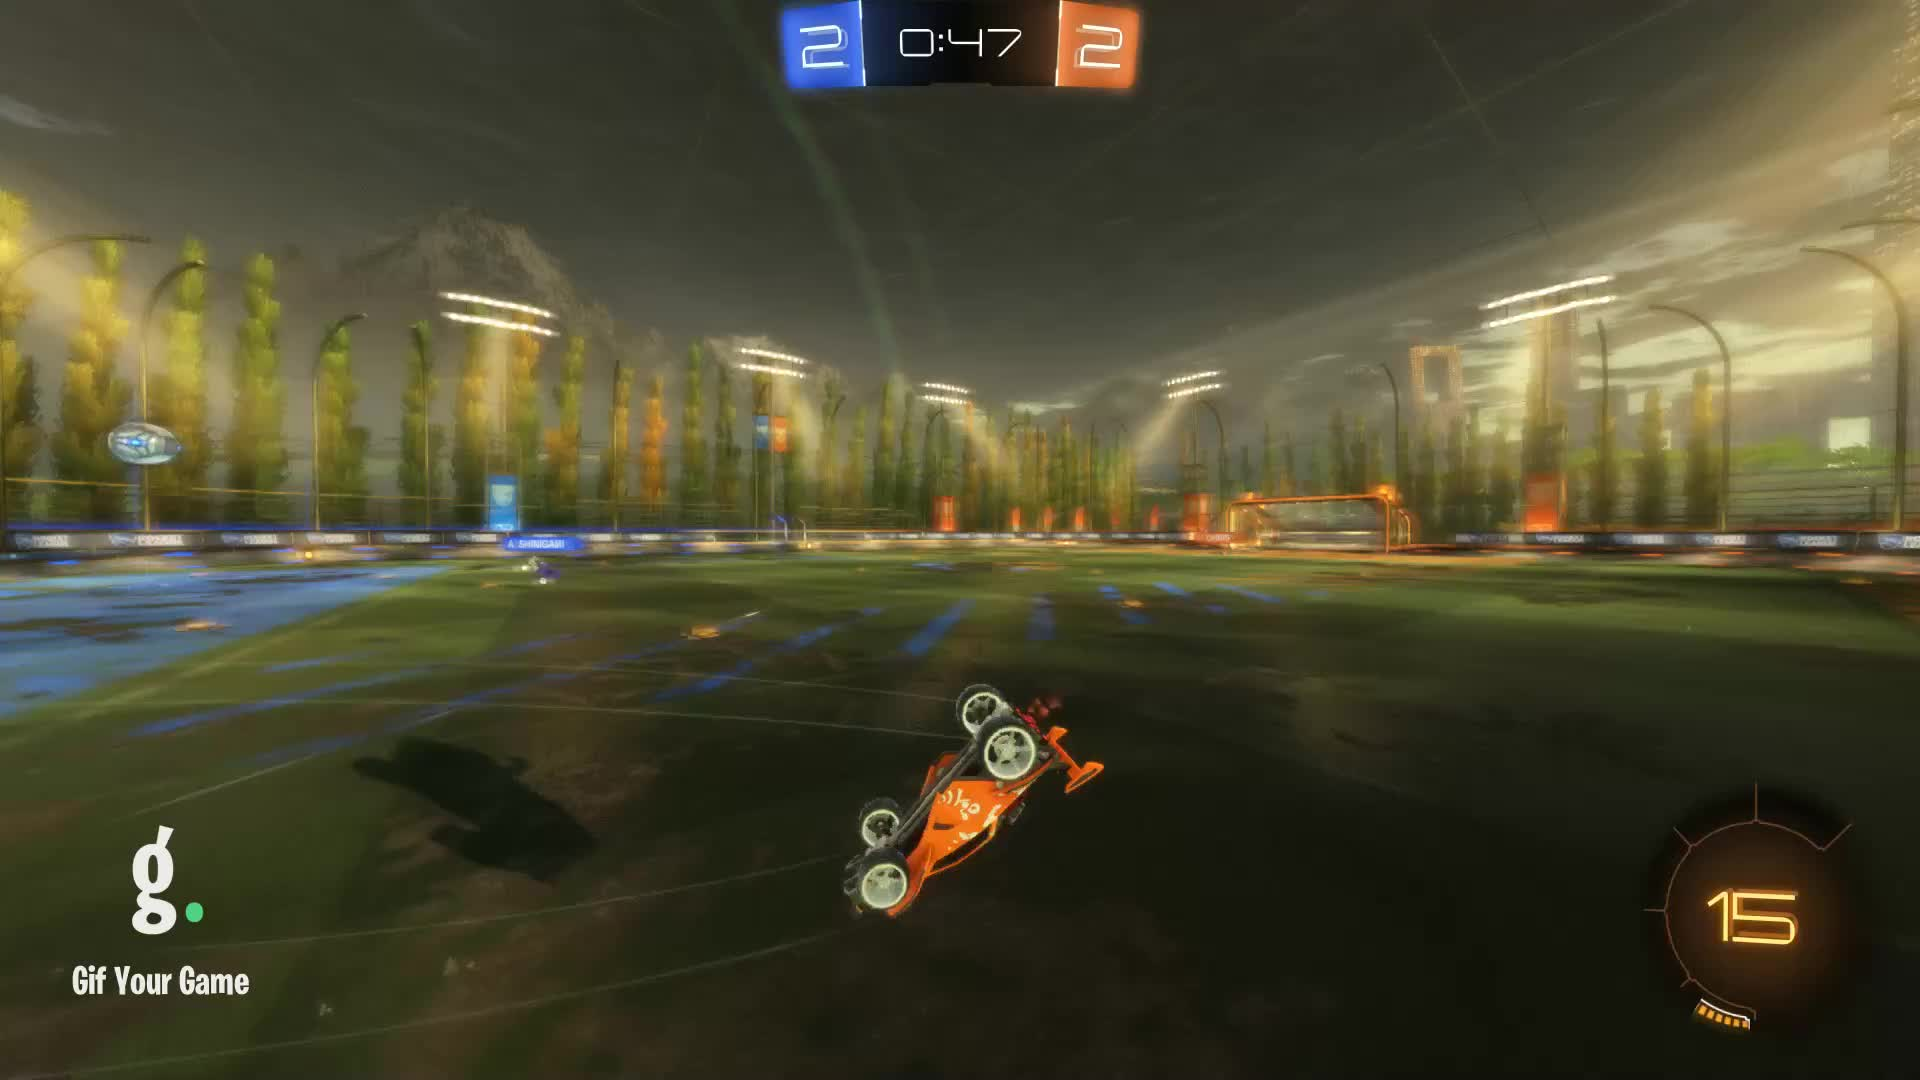 Gif Your Game, GifYourGame, Goal, Rocket League, RocketLeague, Speddy, Goal 5: Speddy GIFs